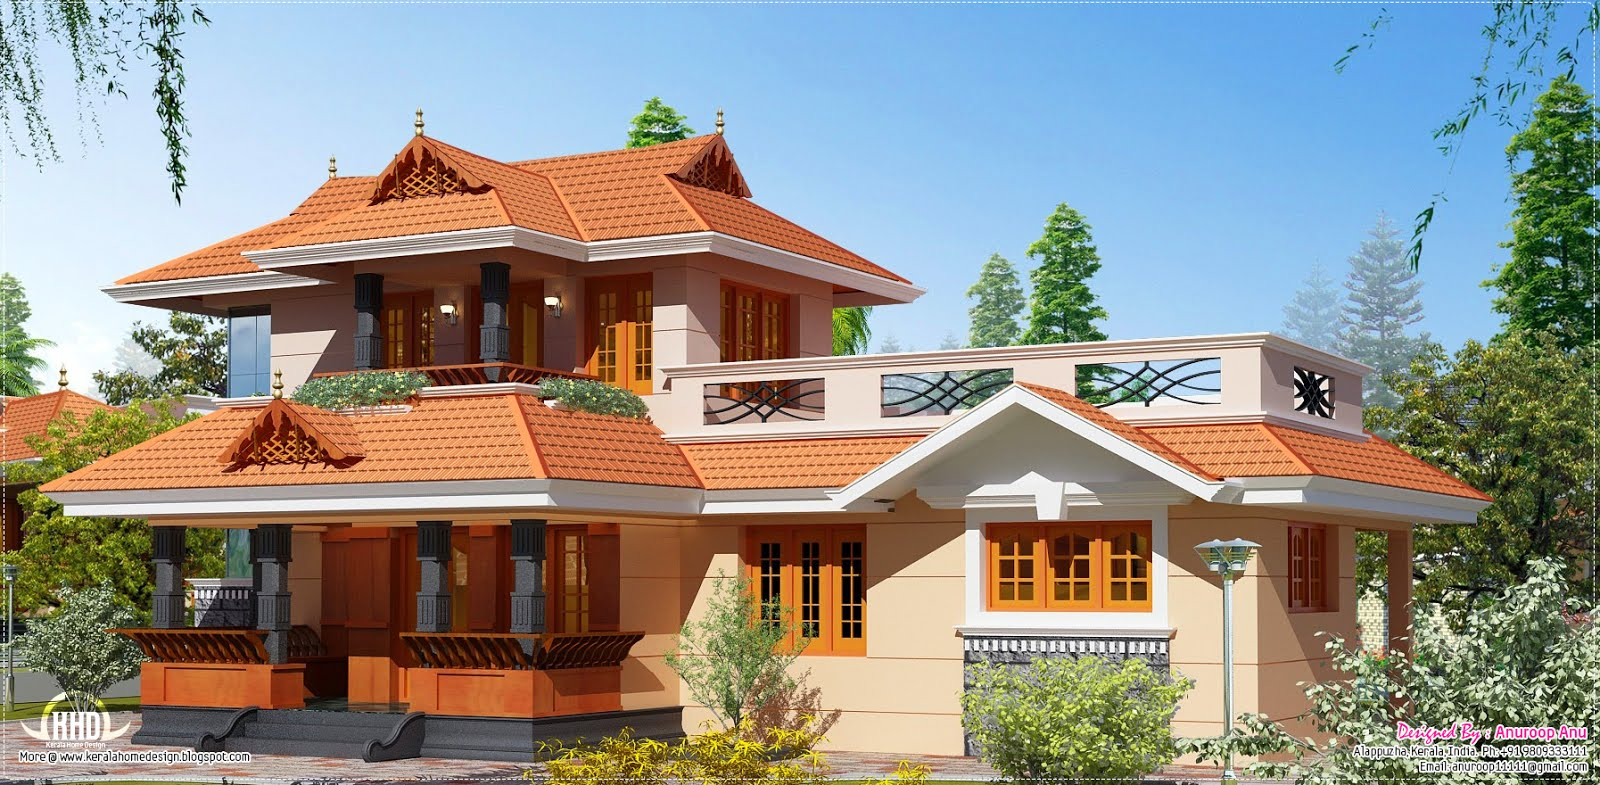 1950 square feet kerala model home house design plans for Kerala model house photos with details